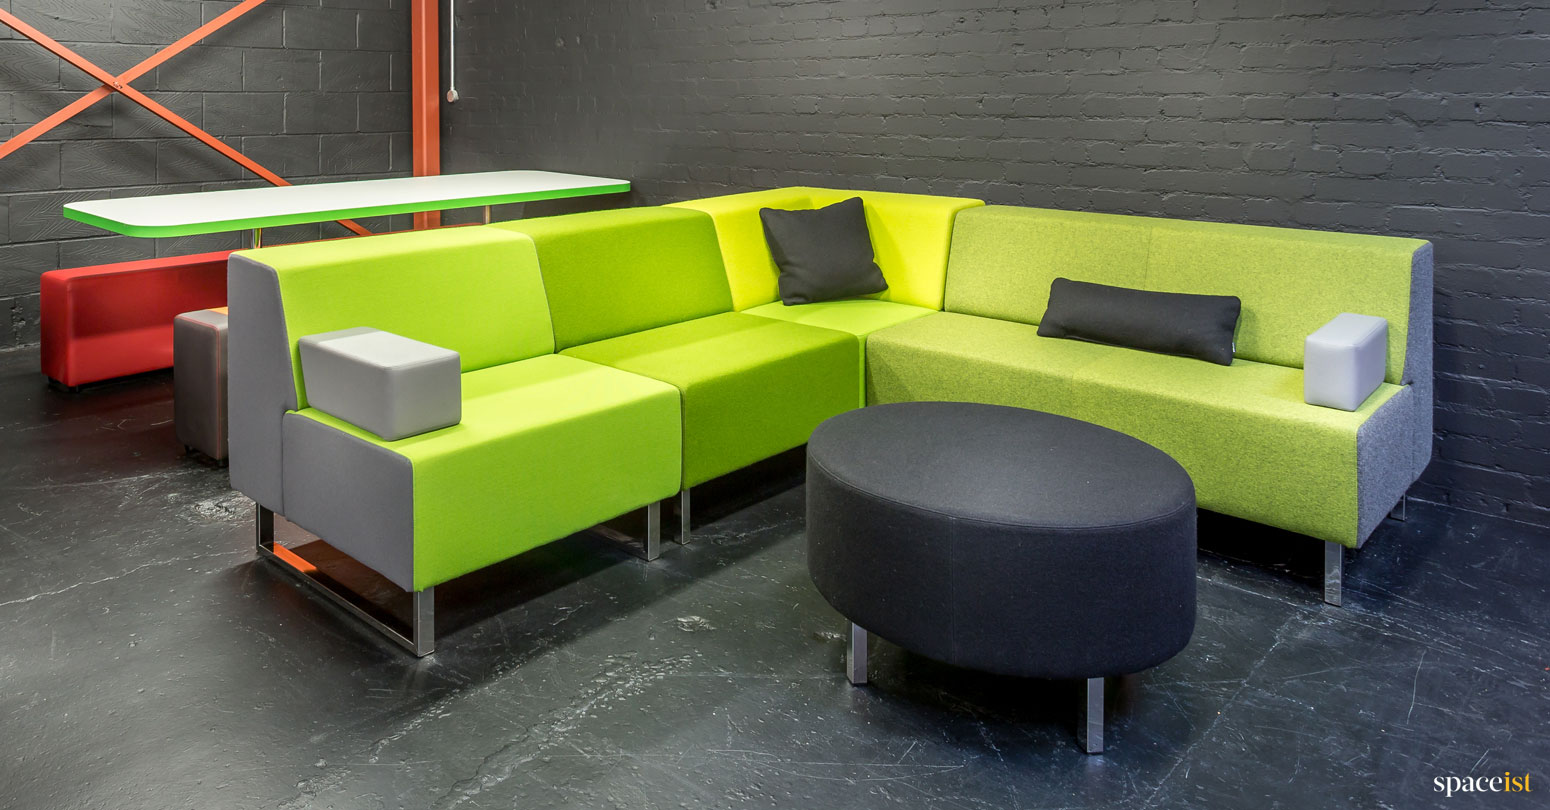 Modular Corner Sofa in Green Fabric